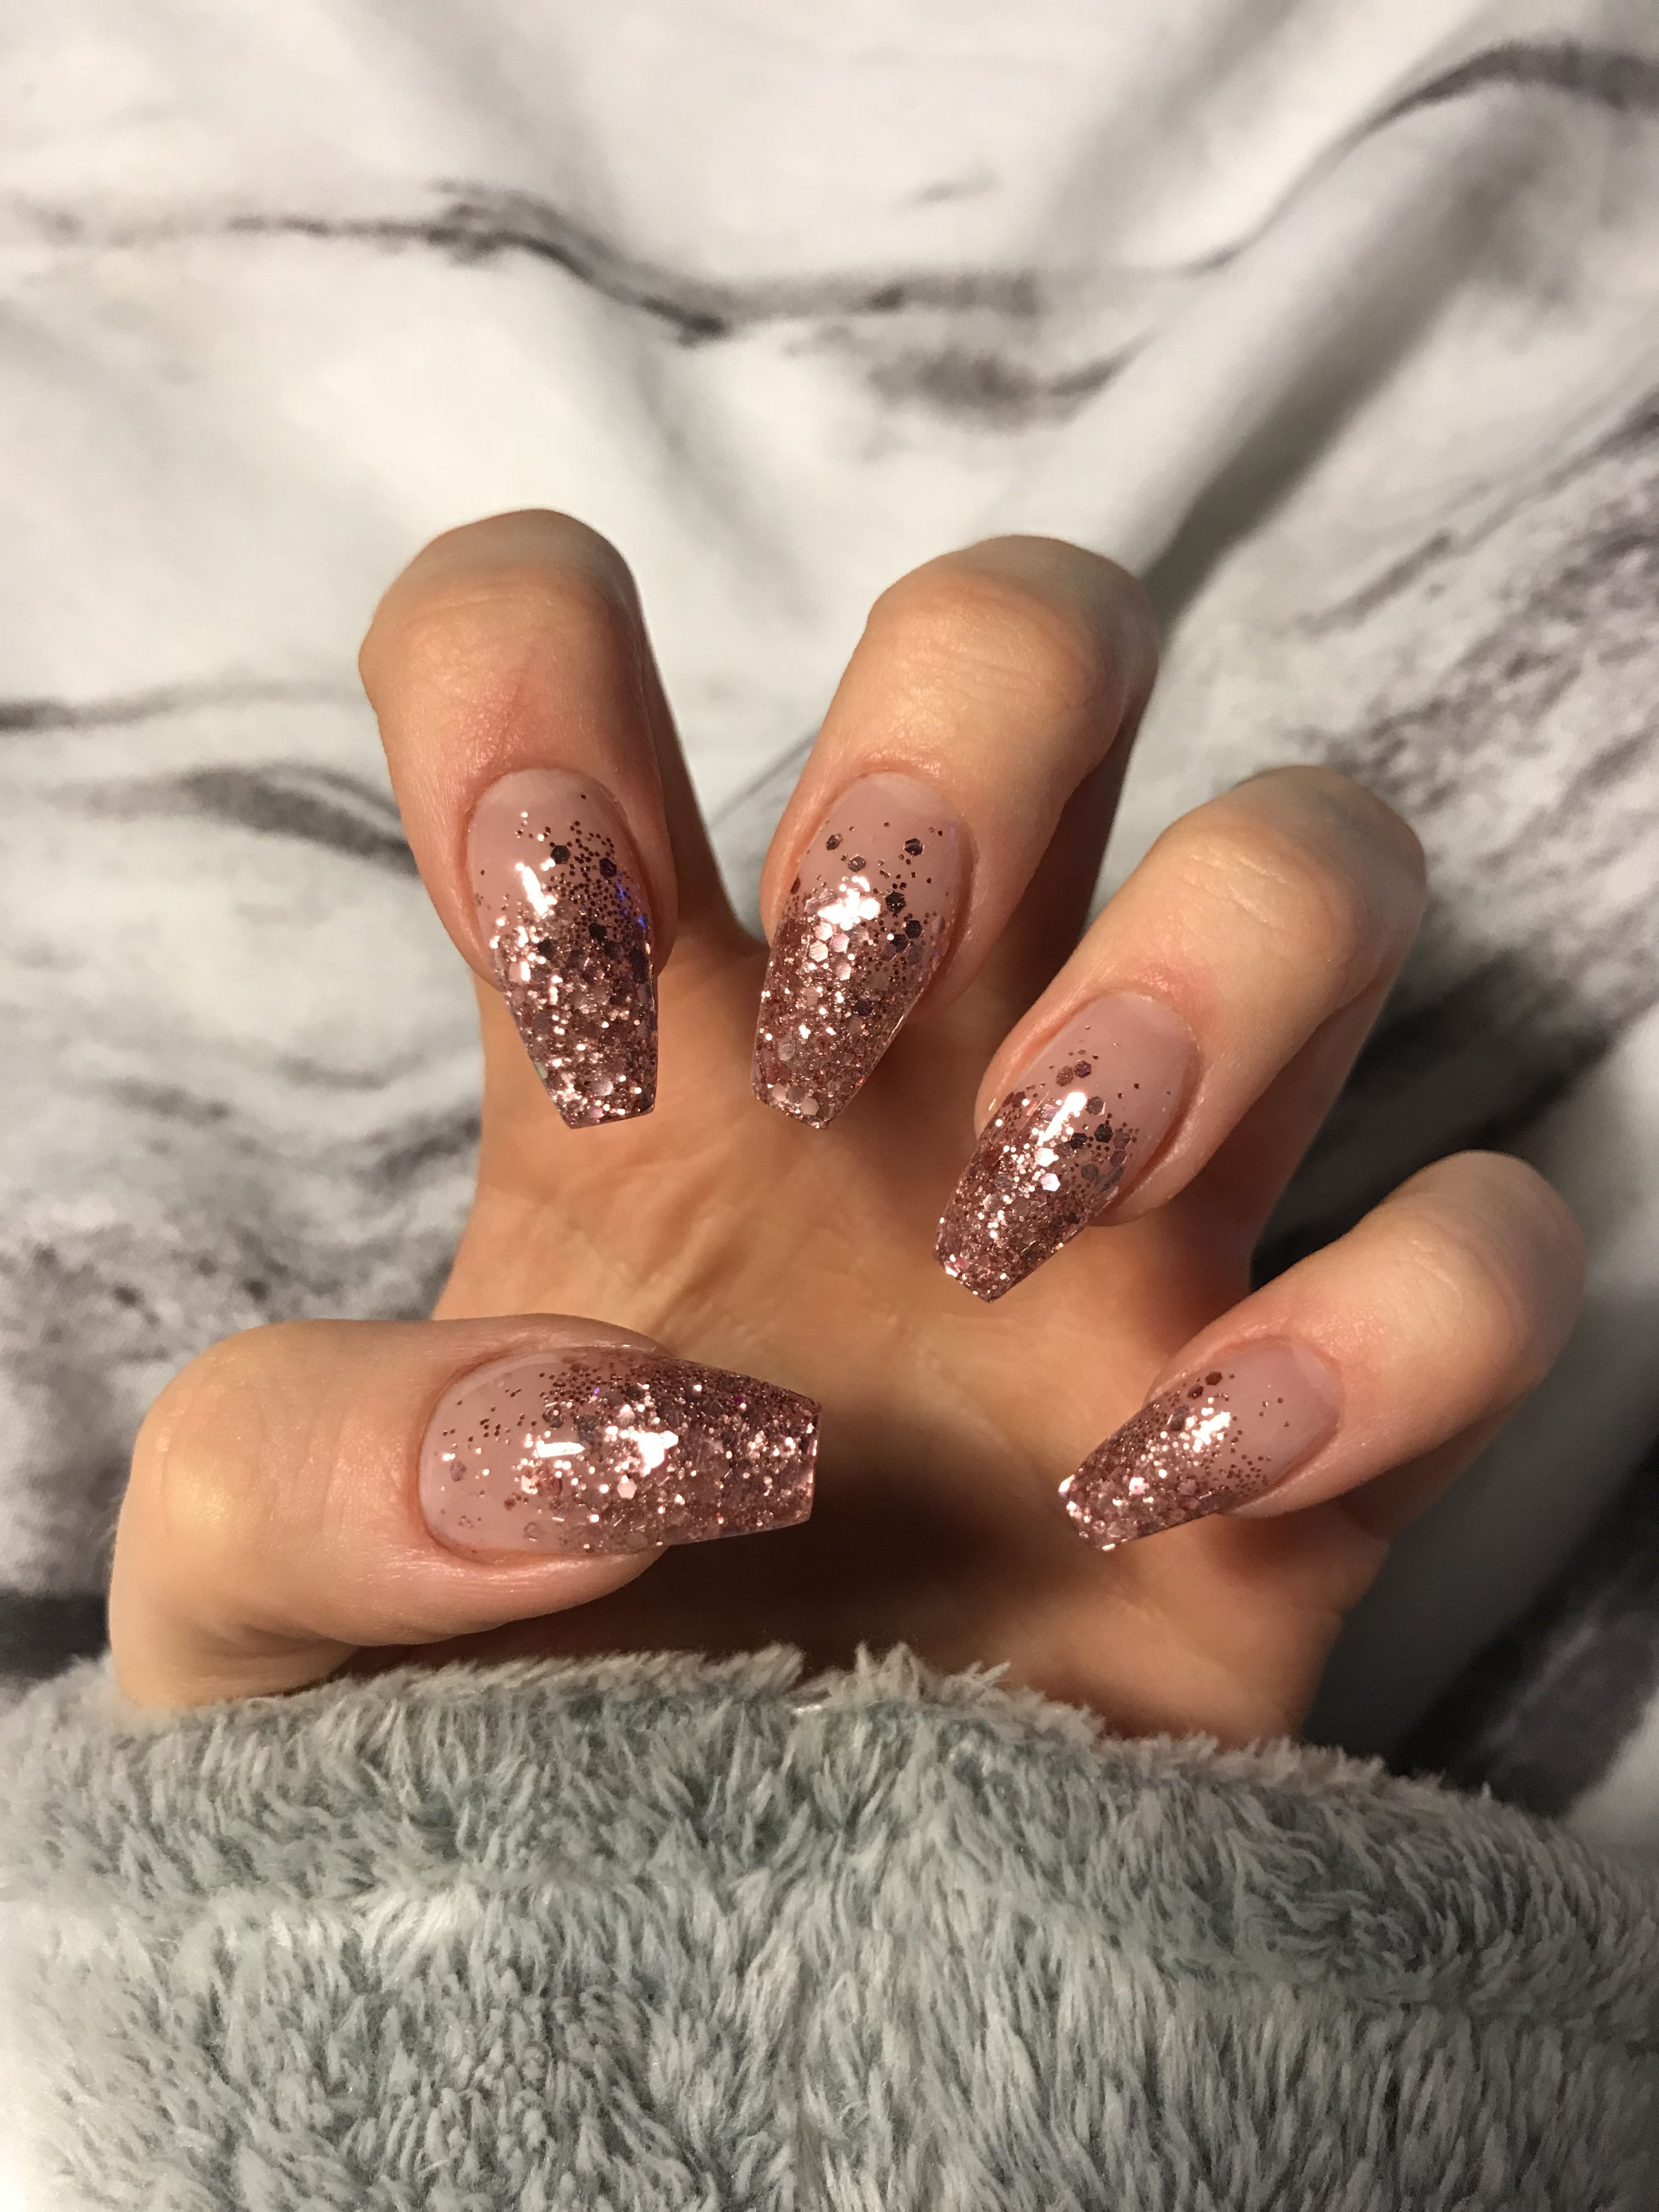 Rose Gold Glitter Ombre Acrylic Coffin Nails Rose Gold Nails Design Nail Designs Glitter Rose Gold Nails Glitter